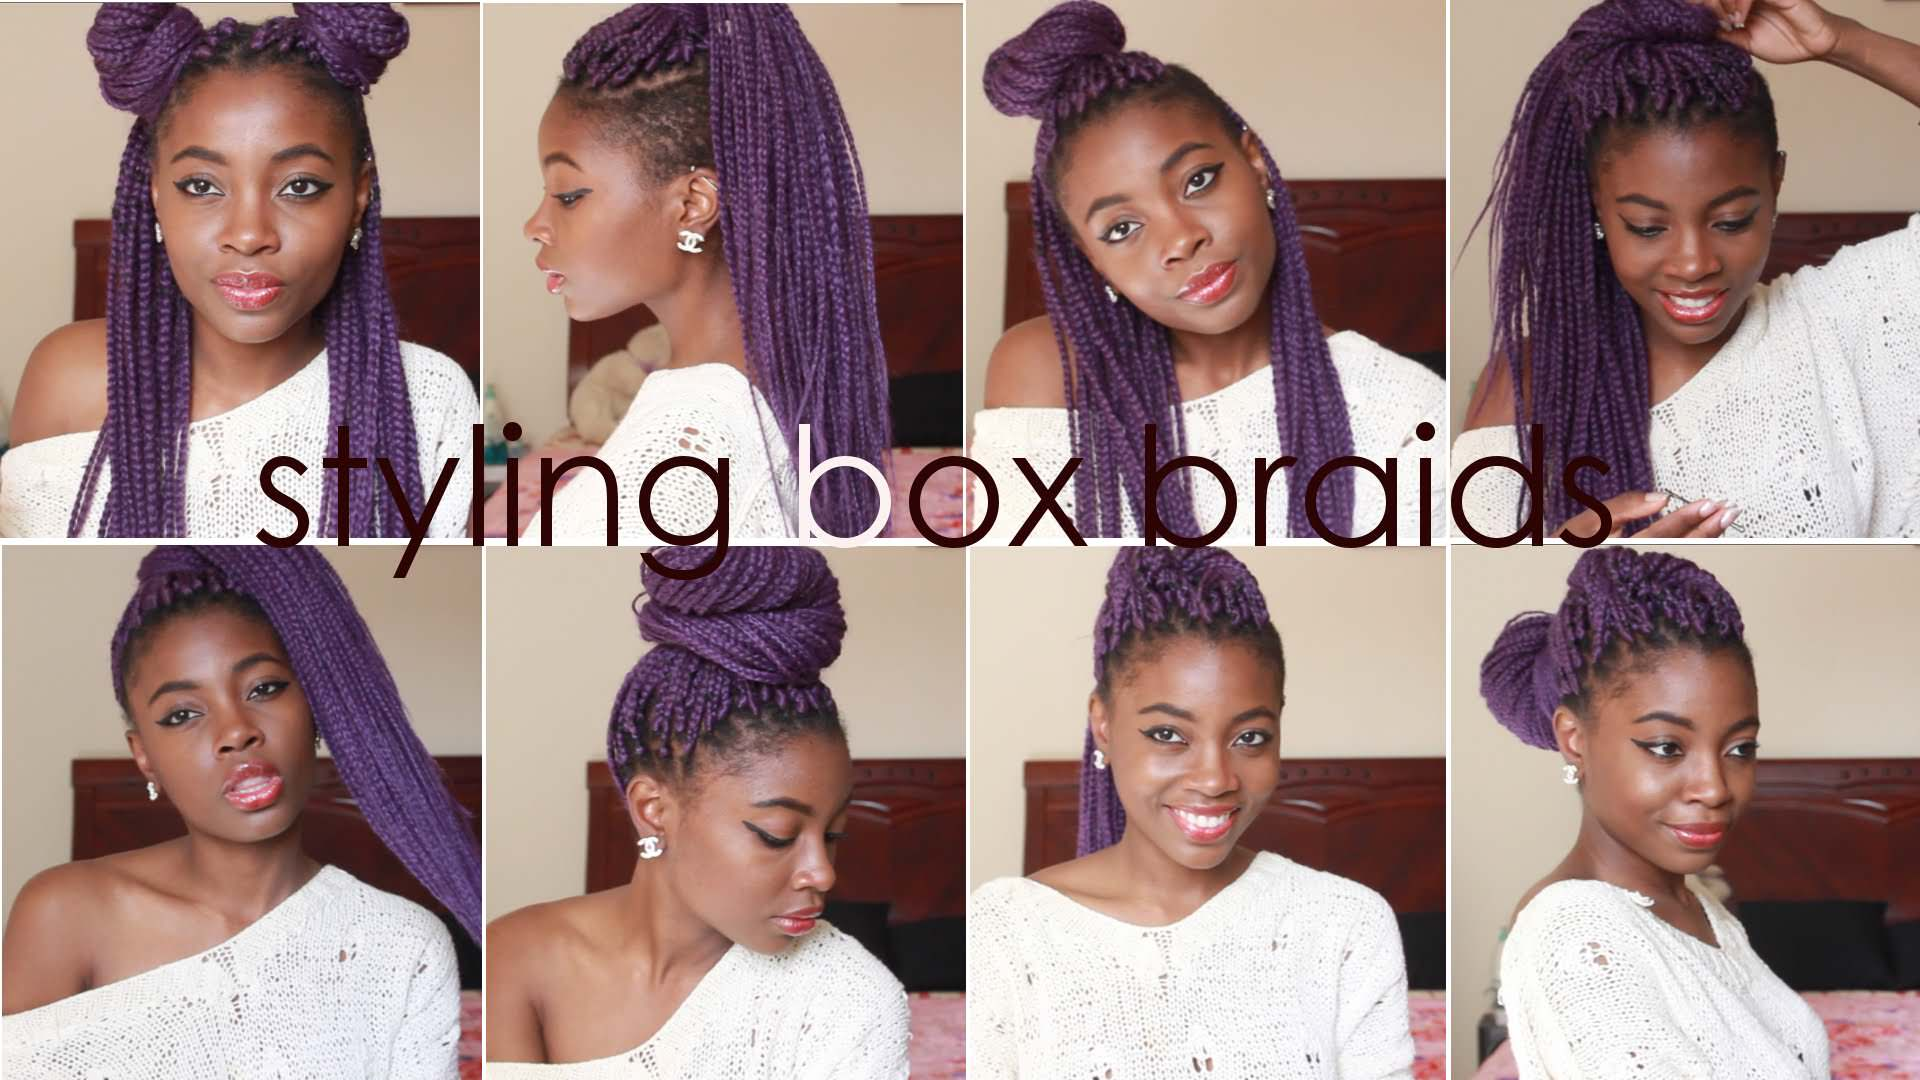 Ways To Style Crochet Box Braids : Cute And Easy Ways To Style Box Braids Png Pictures to pin on ...